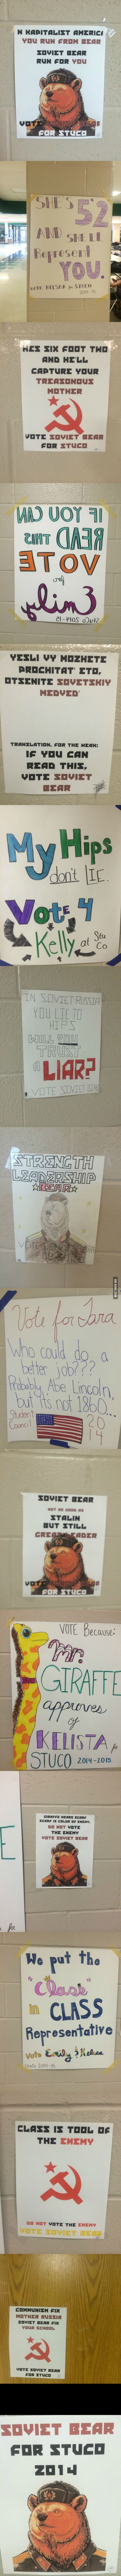 So my school is holding elections for student council... and someone has decided to run as Soviet Bear